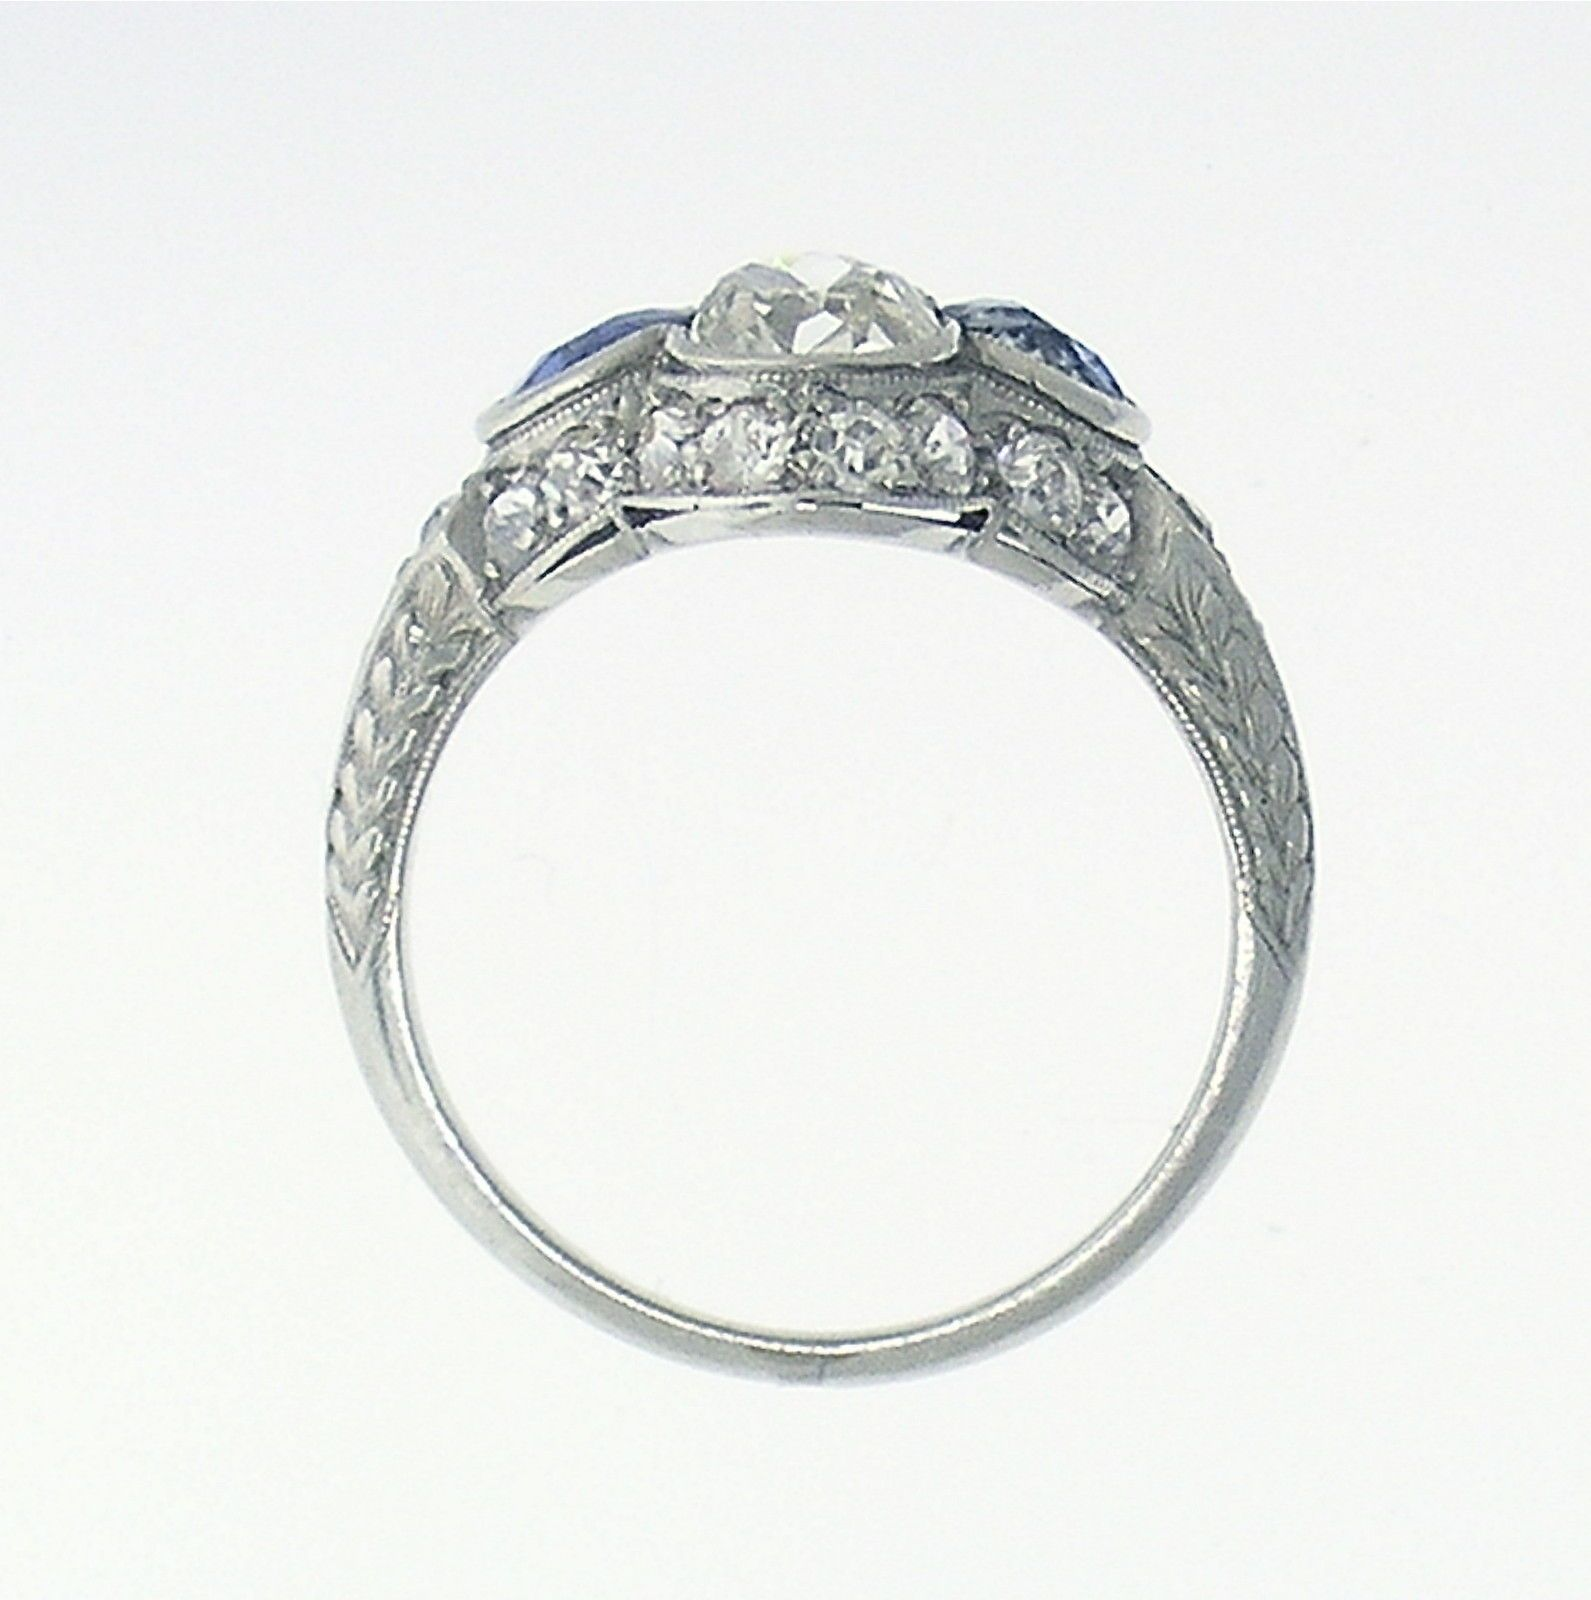 Enchanting Art Deco Diamond & Sapphire Platinum Ring Circa 1920